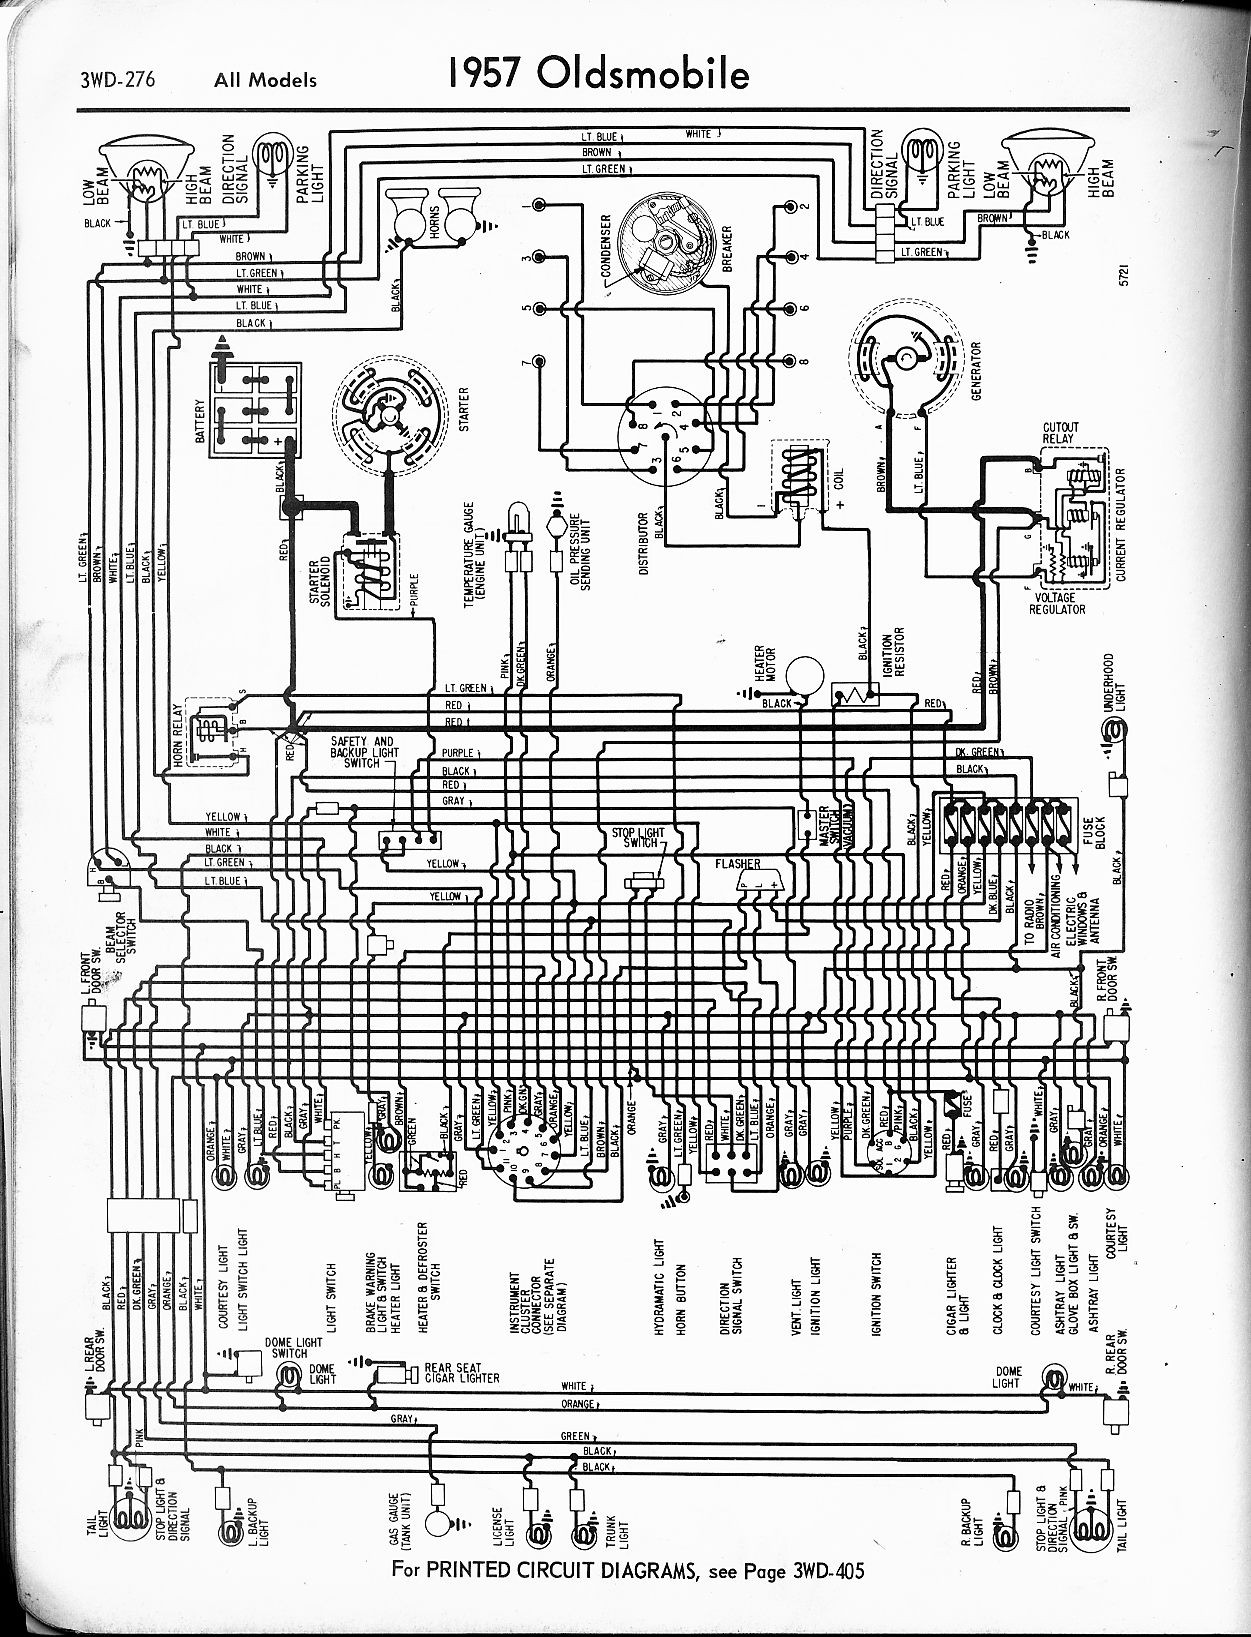 1998 Honda Accord Engine Diagram Cr V Radio Wiring 2007 Oldsmobile Diagrams The Old Car Manual Project Of